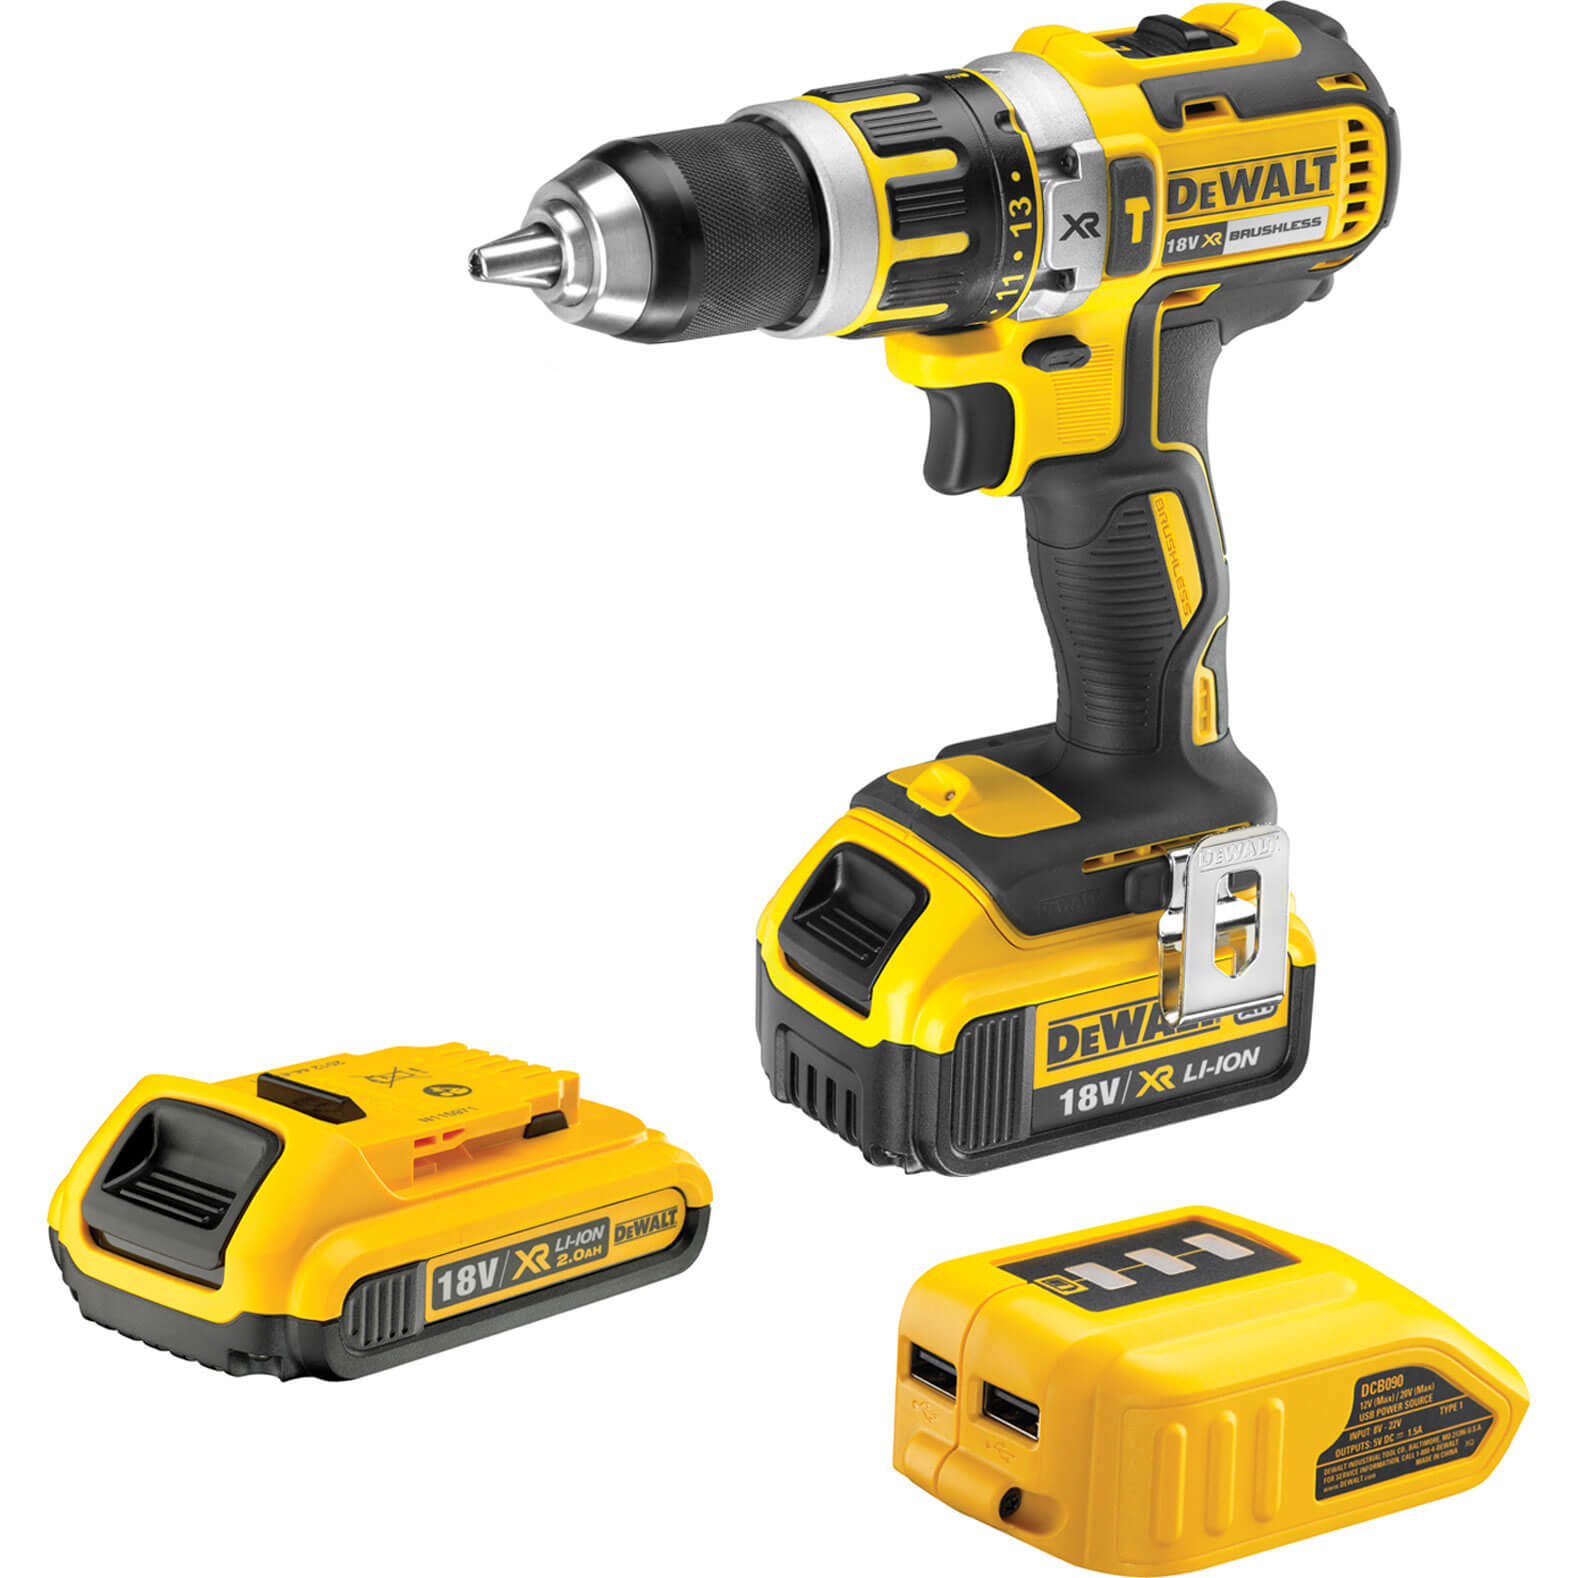 dewalt dcd737d2 gb 144v xr 2ah li ion cordless combi drill brushless motor. Black Bedroom Furniture Sets. Home Design Ideas